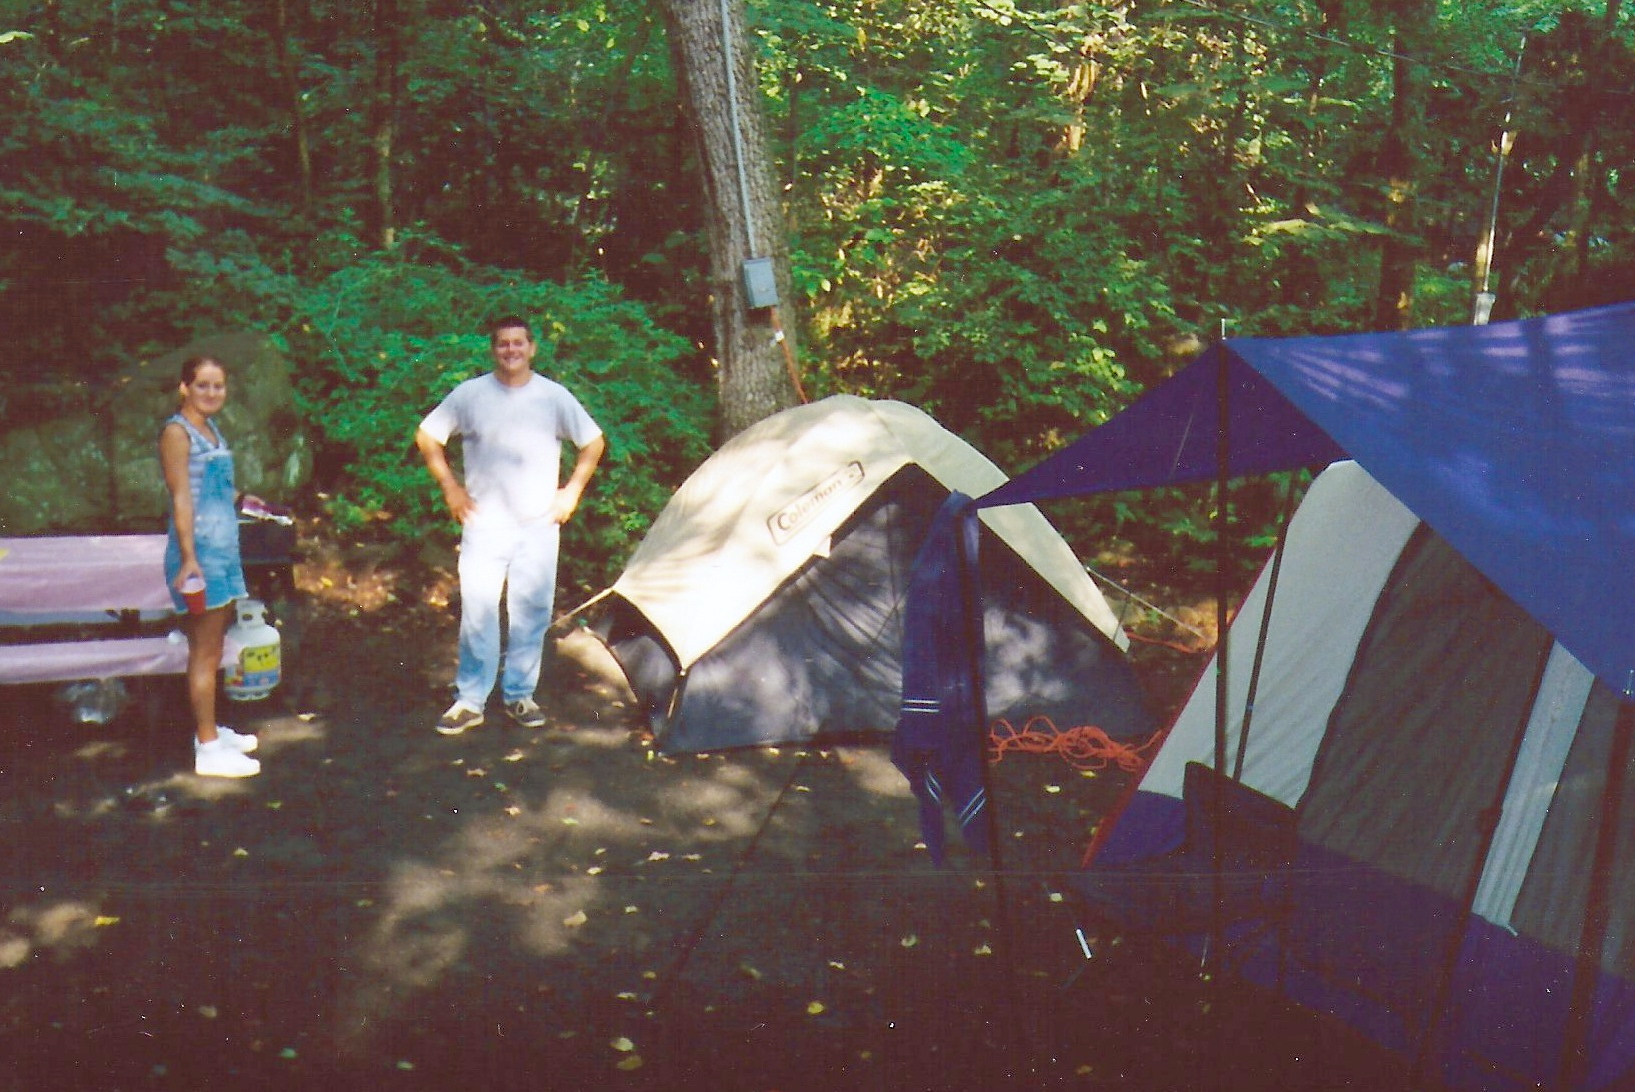 one of our camp sites along the way